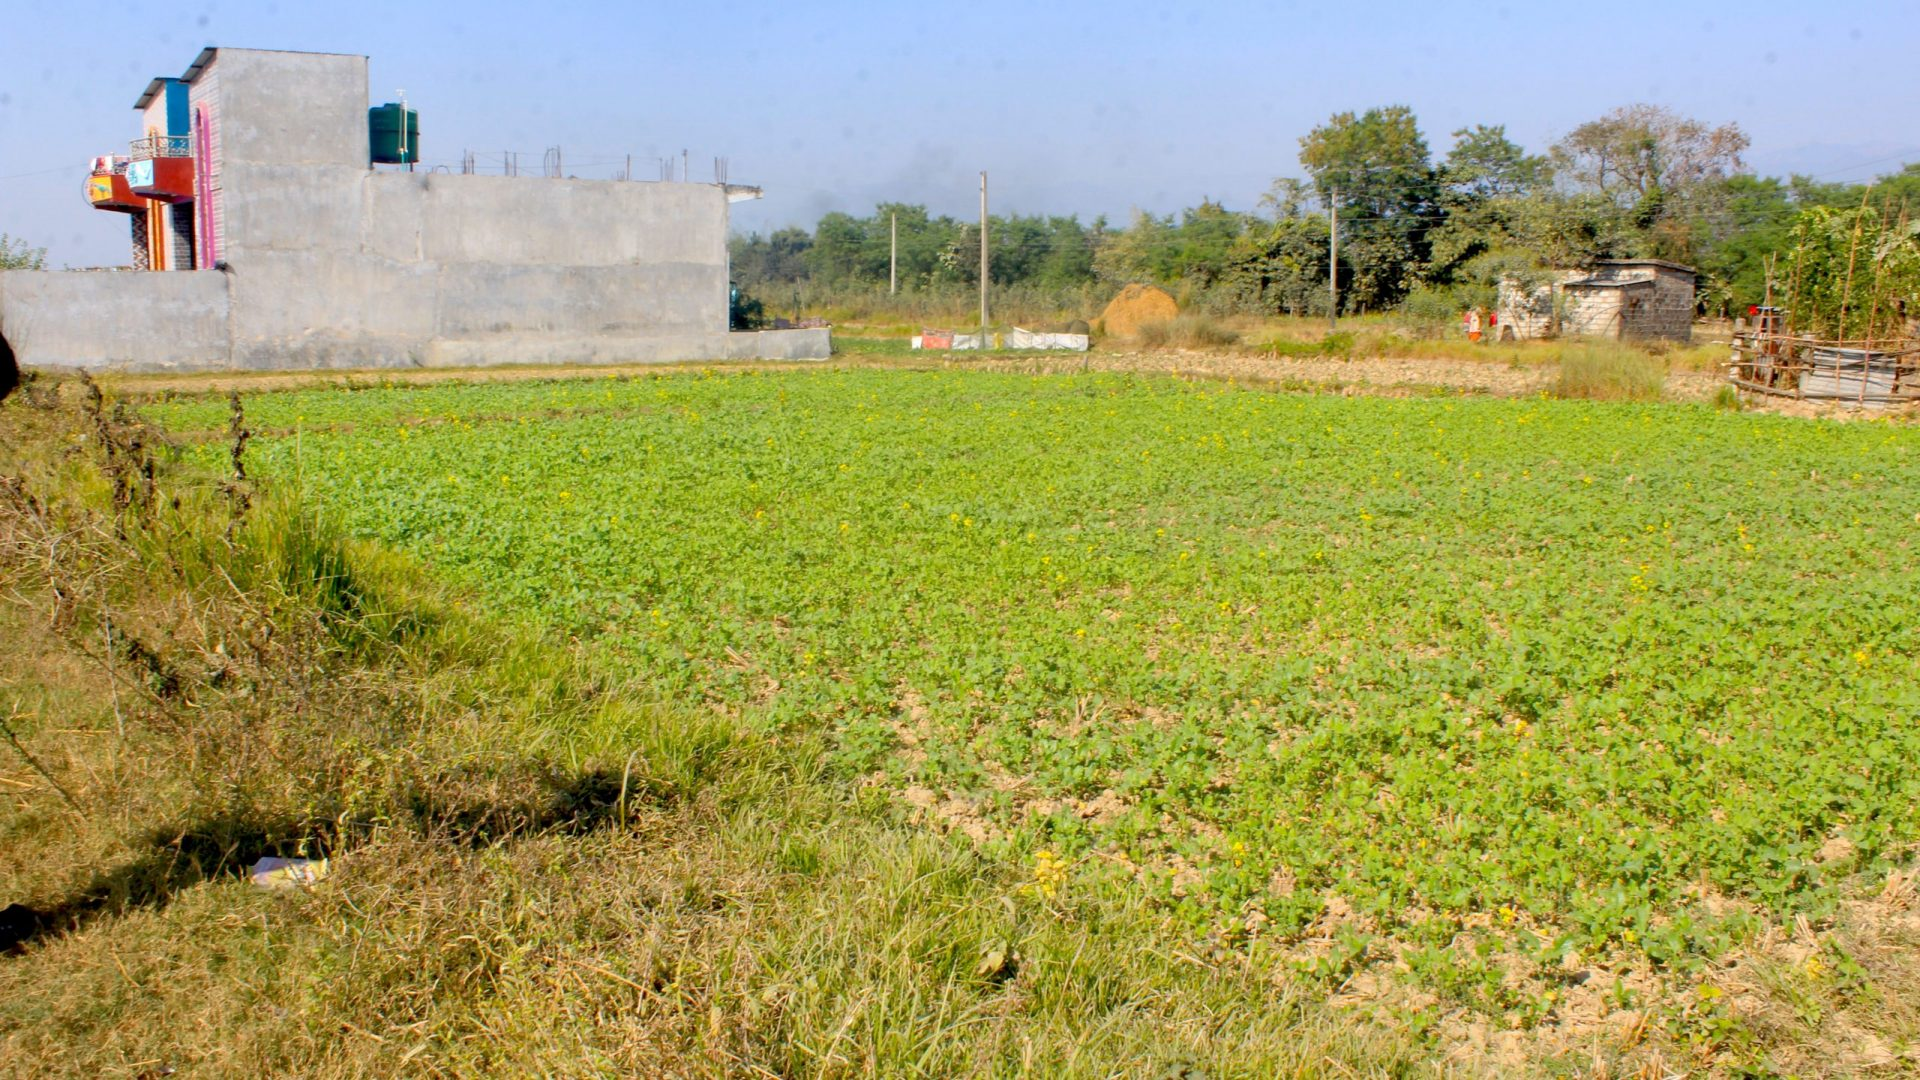 Cheap land for sale in Sunawal, Nawalparasi Argouli, Nepal